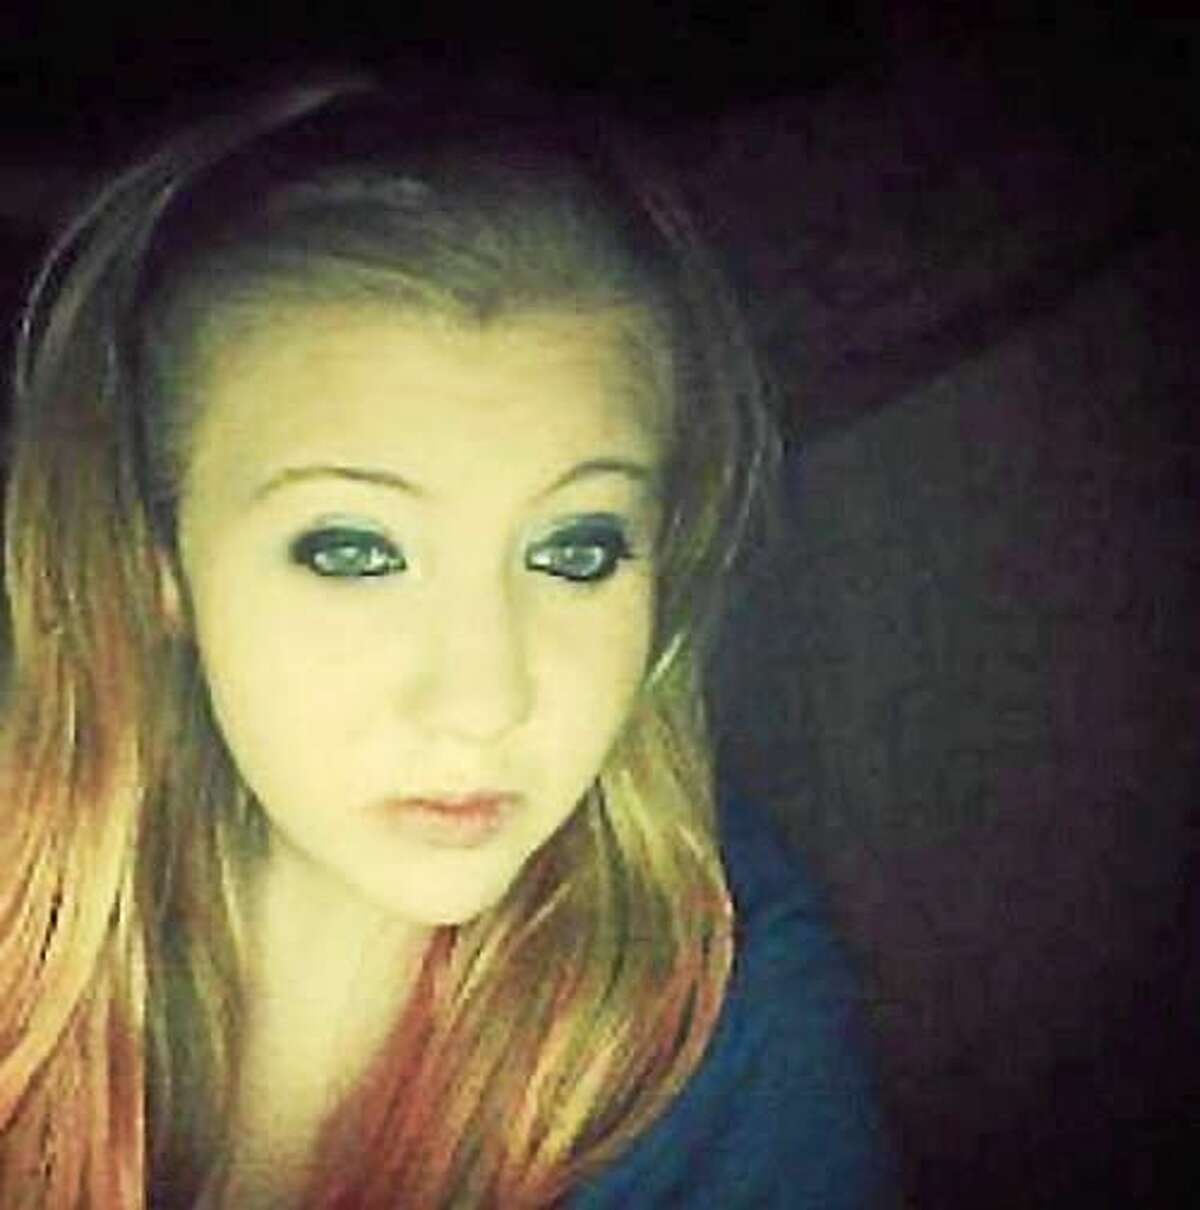 Clinton police say Rebecca Arthur, 17, flew to Morocco to meet a boy from Facebook. Now they're asking for the public's help to find her.